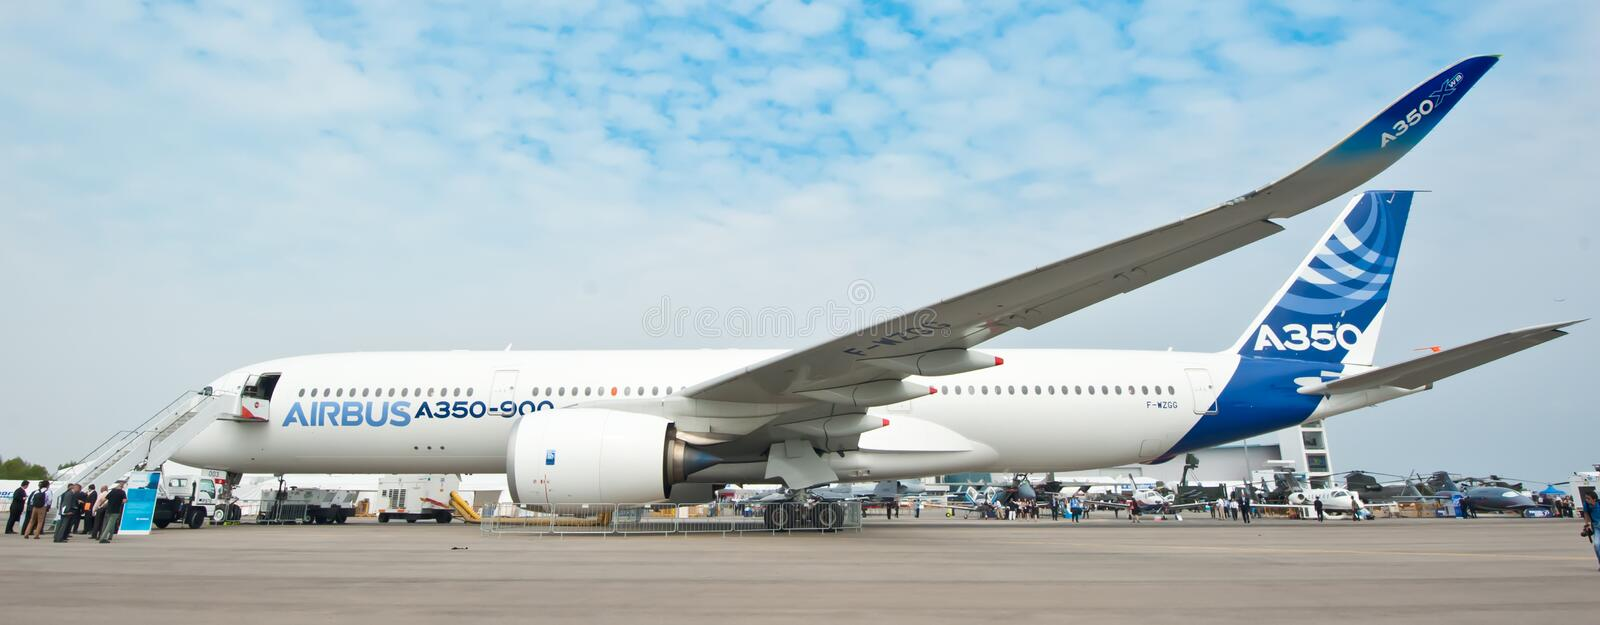 Luchtbus A350-900 in Singapore Airshow 2014 royalty-vrije stock afbeelding